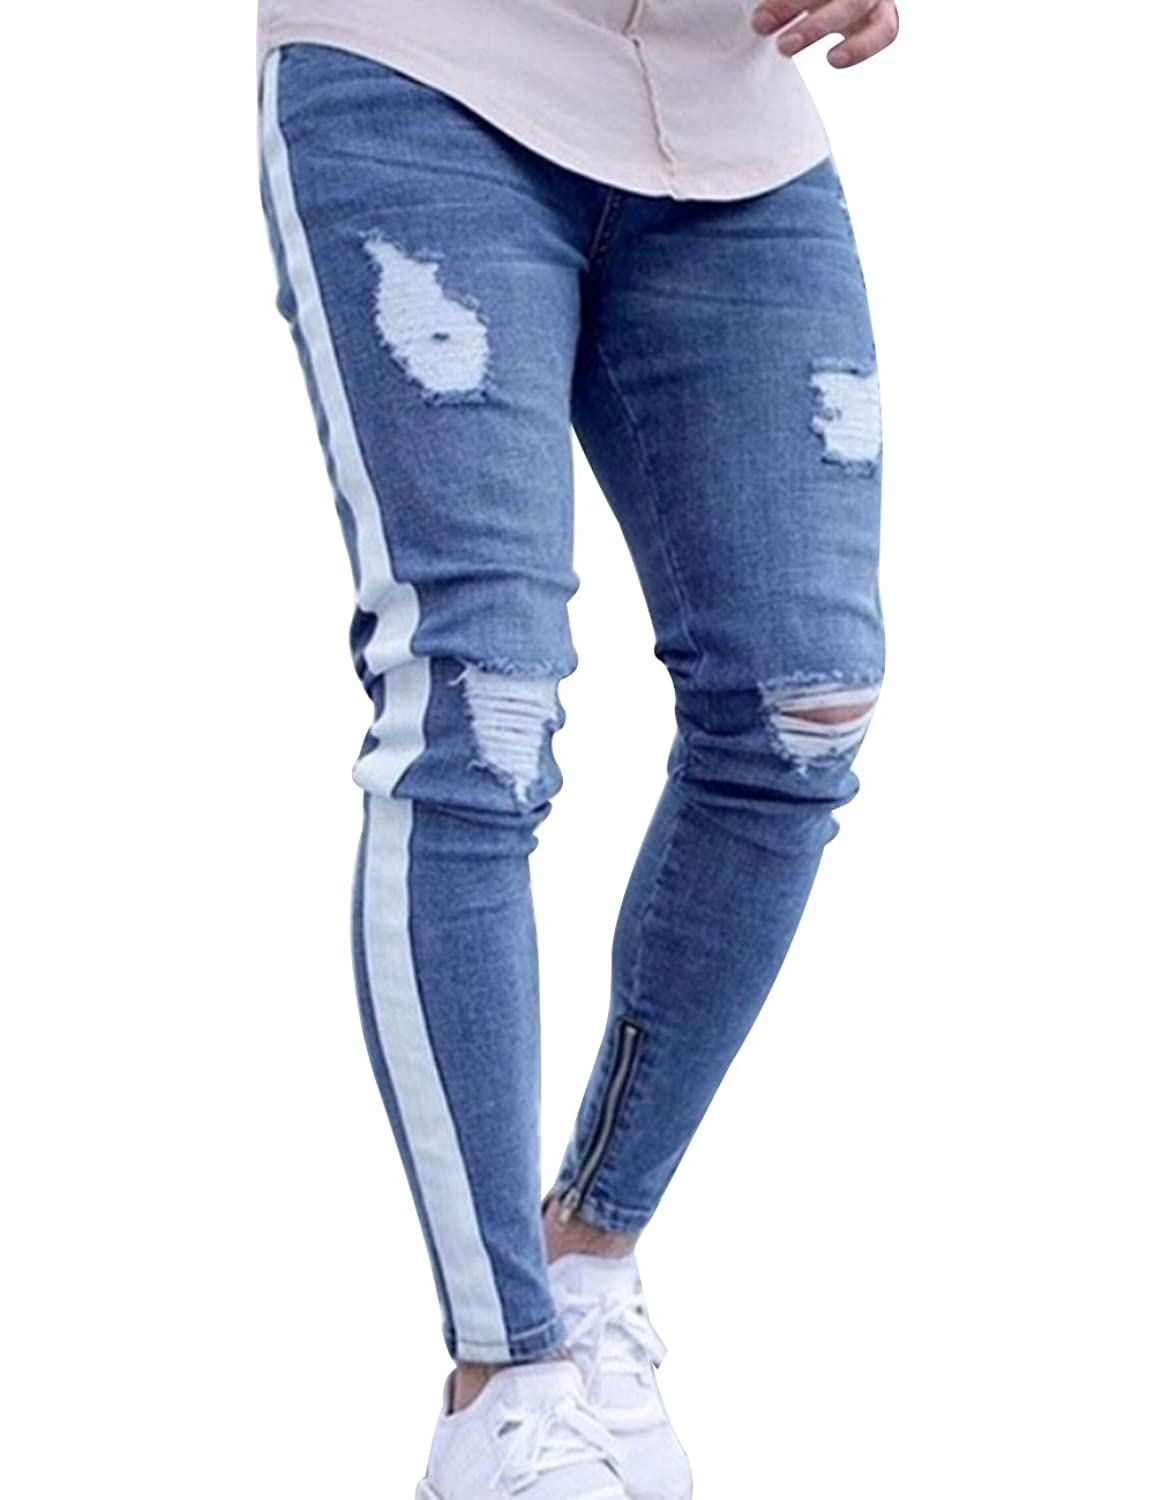 c02fd3dd087 Style: Destroyed detail, Zippers at ankles, Side Stripe Twill Consists of  cotton fabric which is lightweight, comfortable, and breathable material.